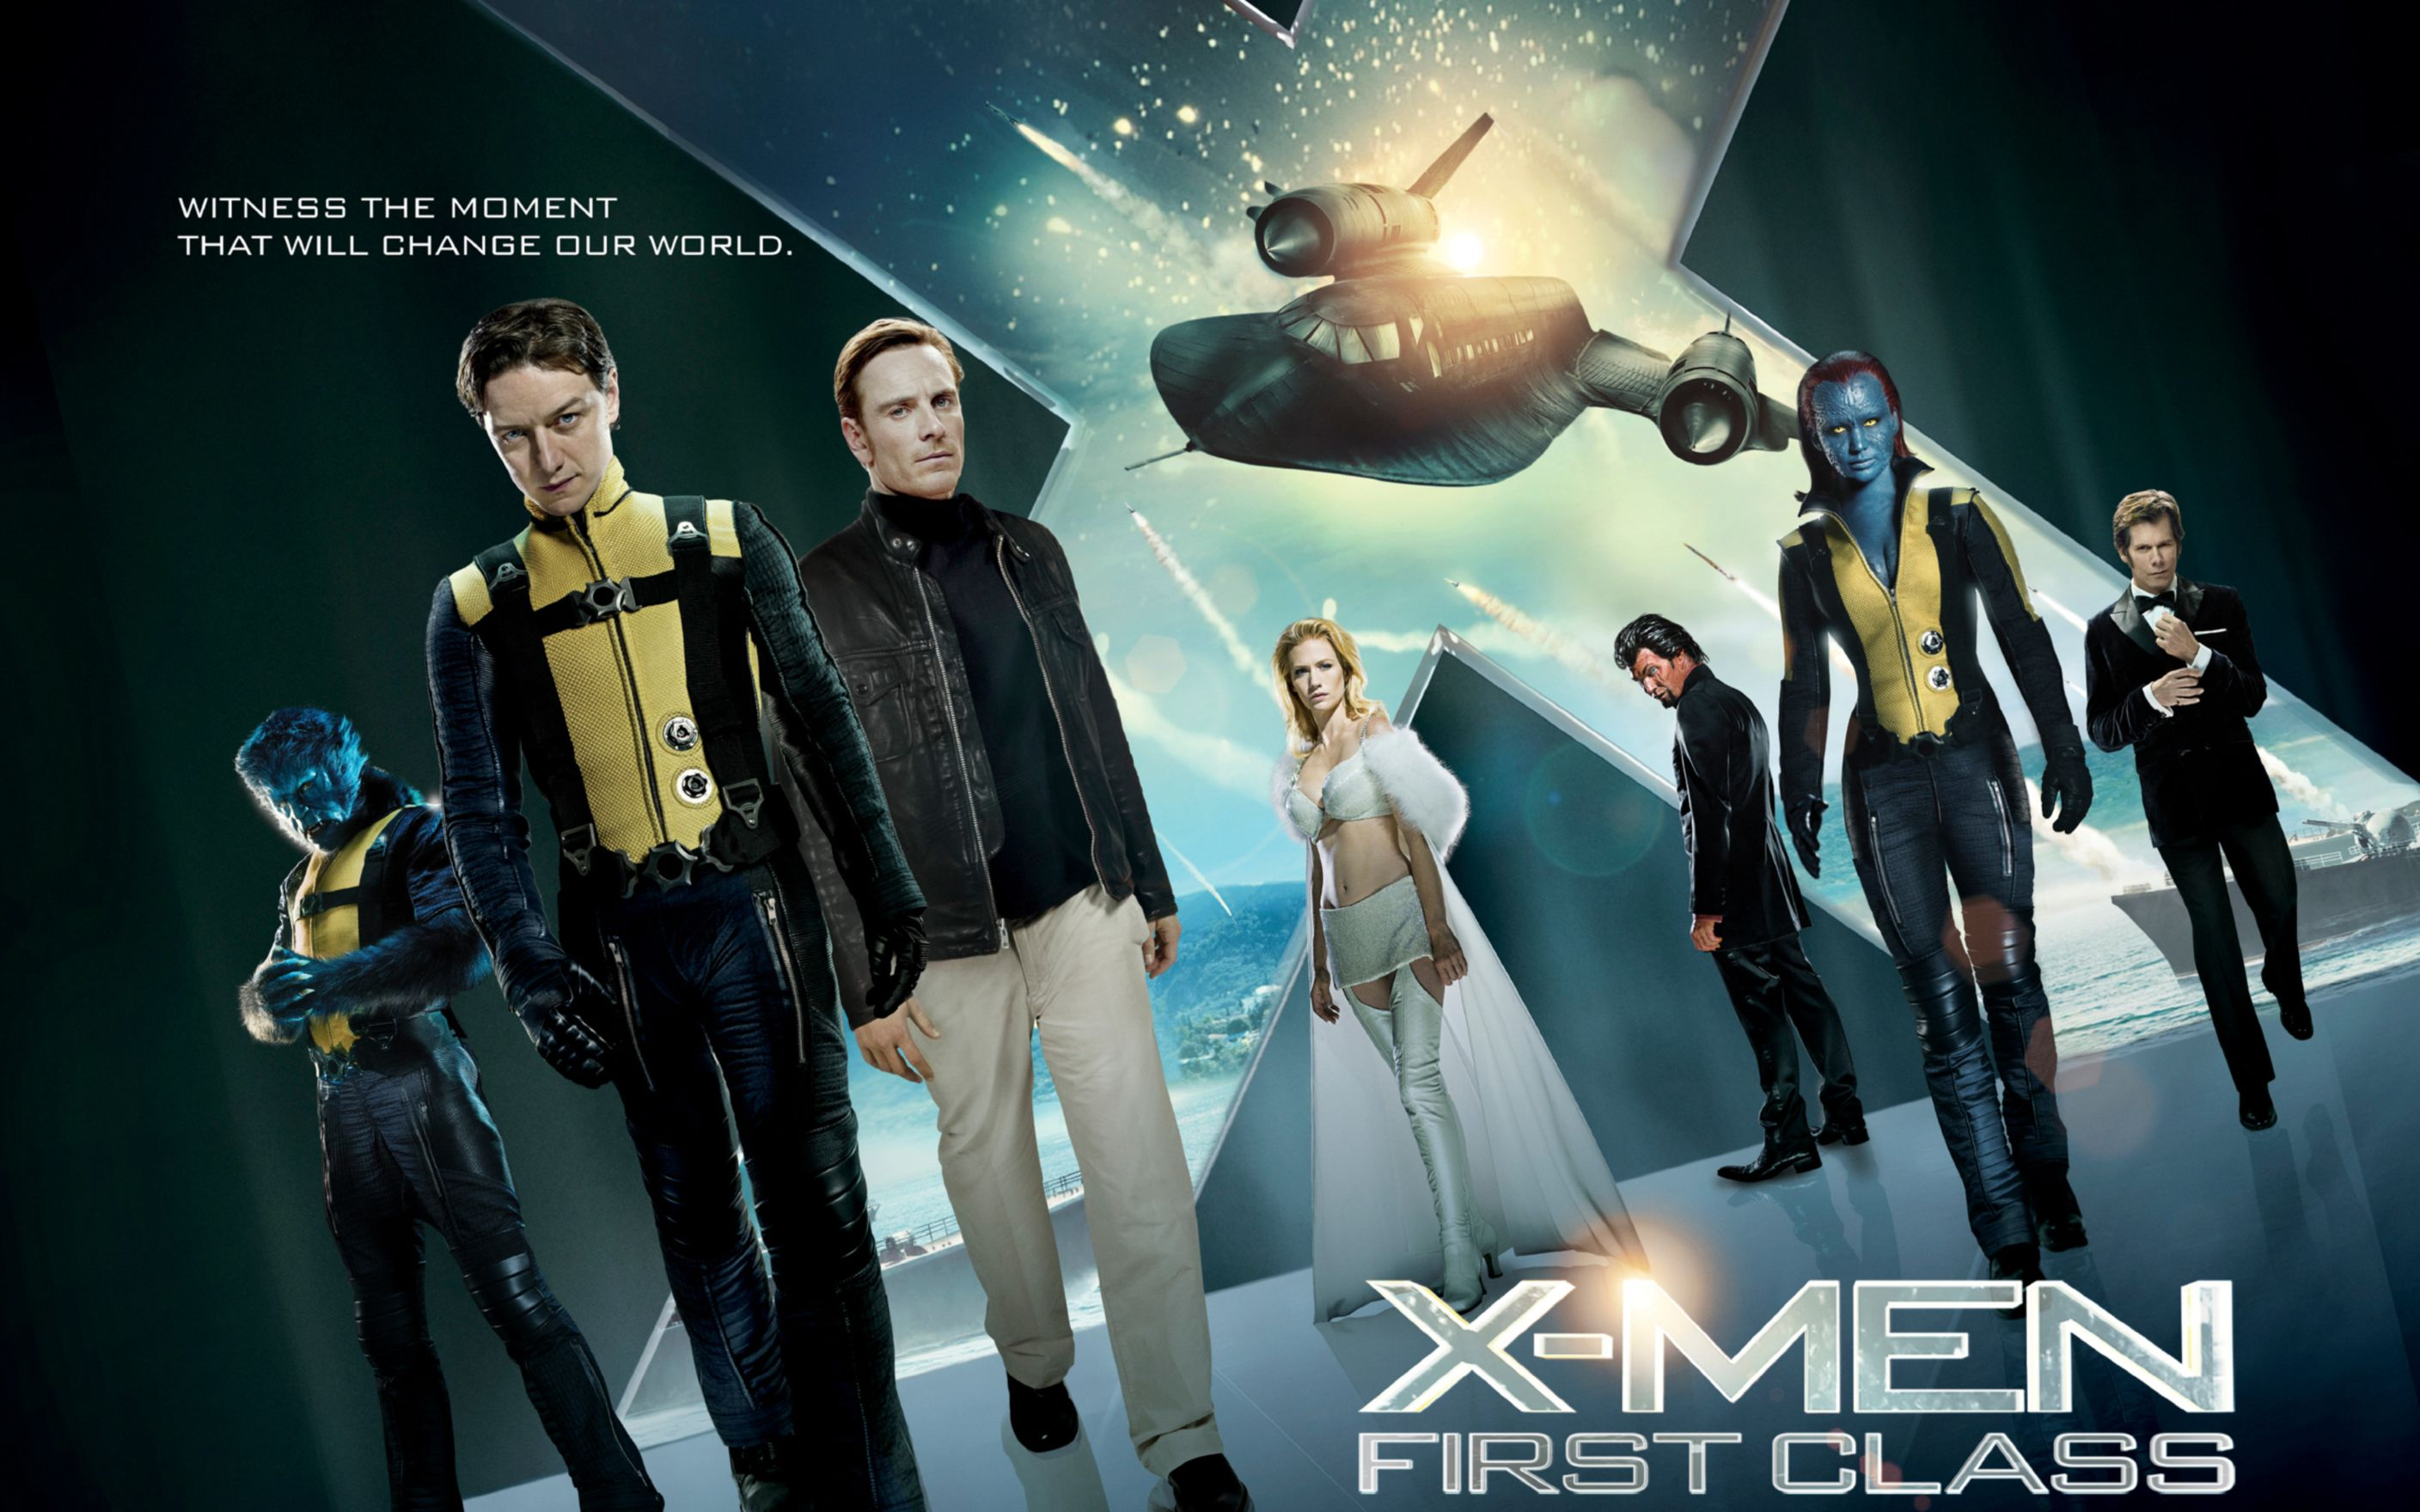 Download free HD X Men First Class 2011 Movie Wide Wallpaper, image